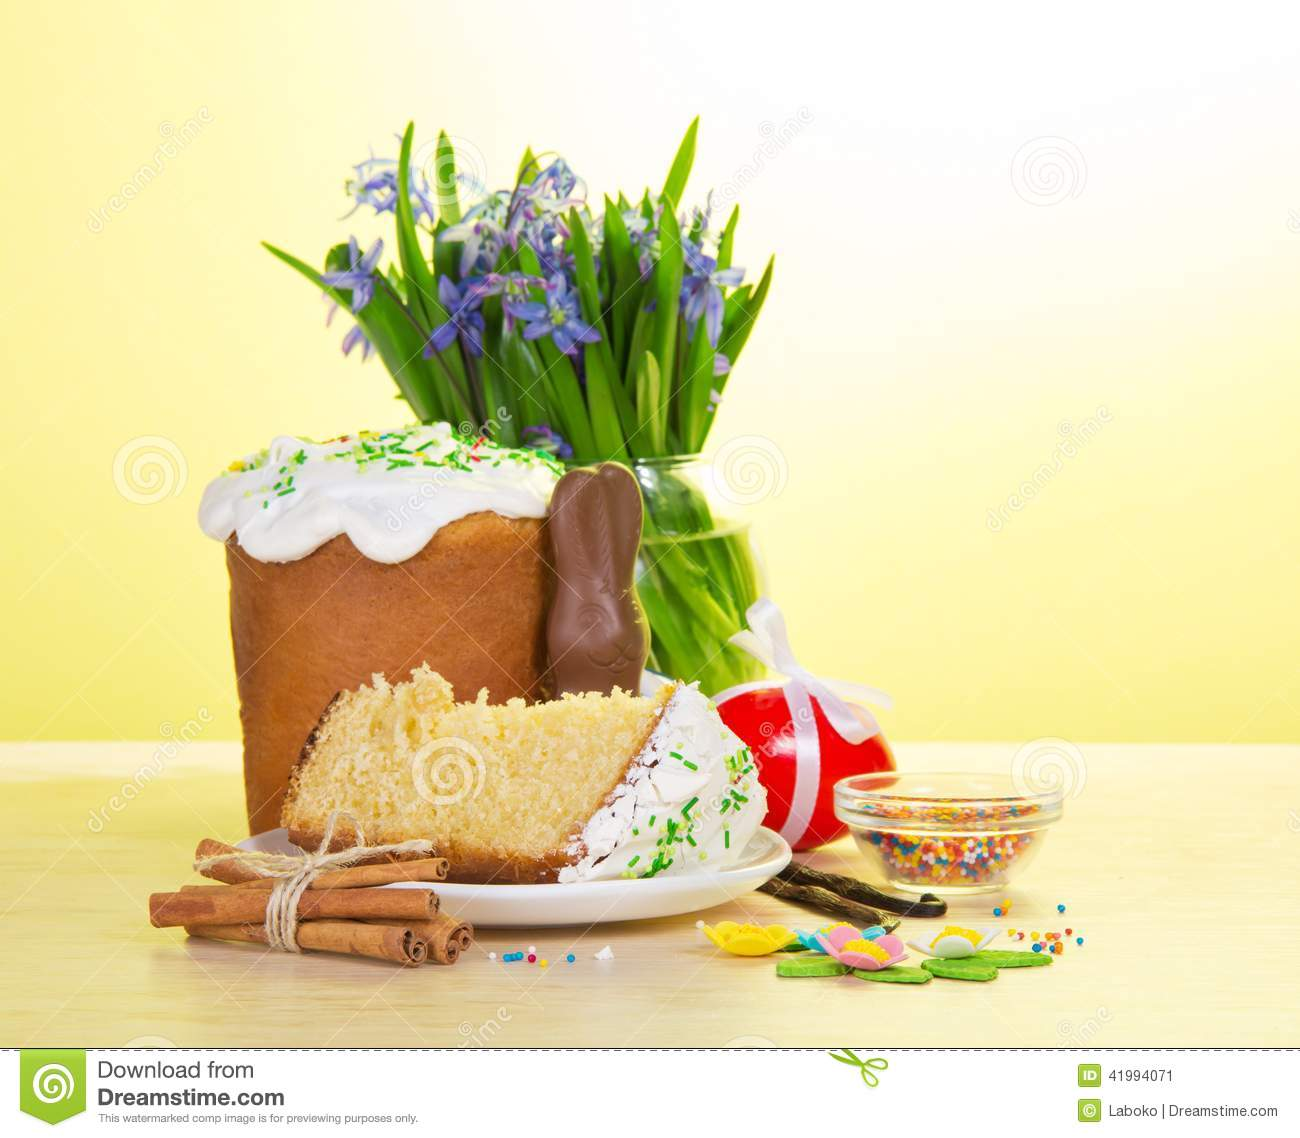 Dreamstime.com & Easter Food And Vase With The Flowers On A Table Stock Image ...